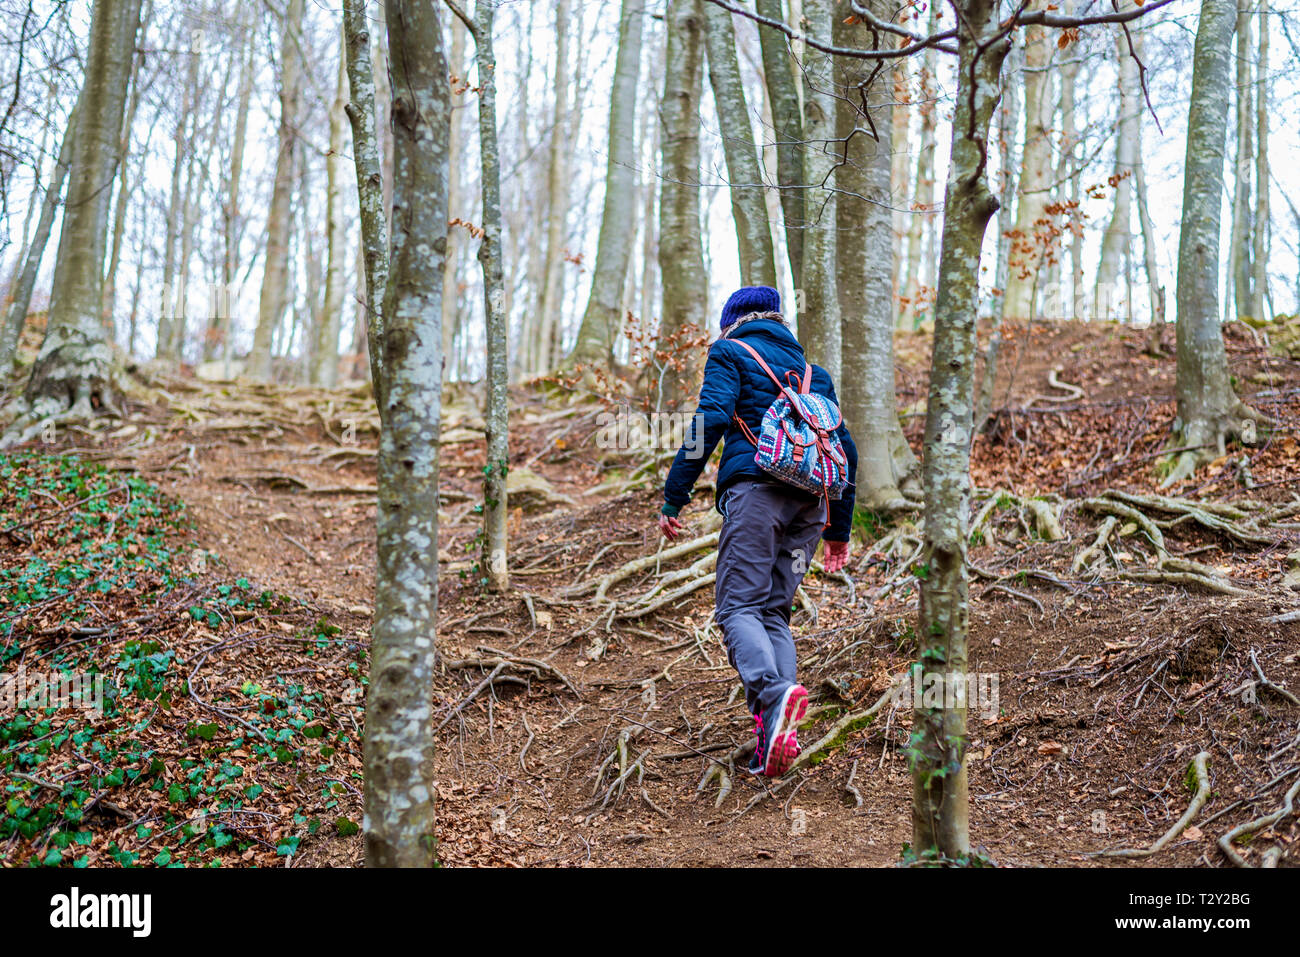 Back view of woman walking in the forest - Stock Image